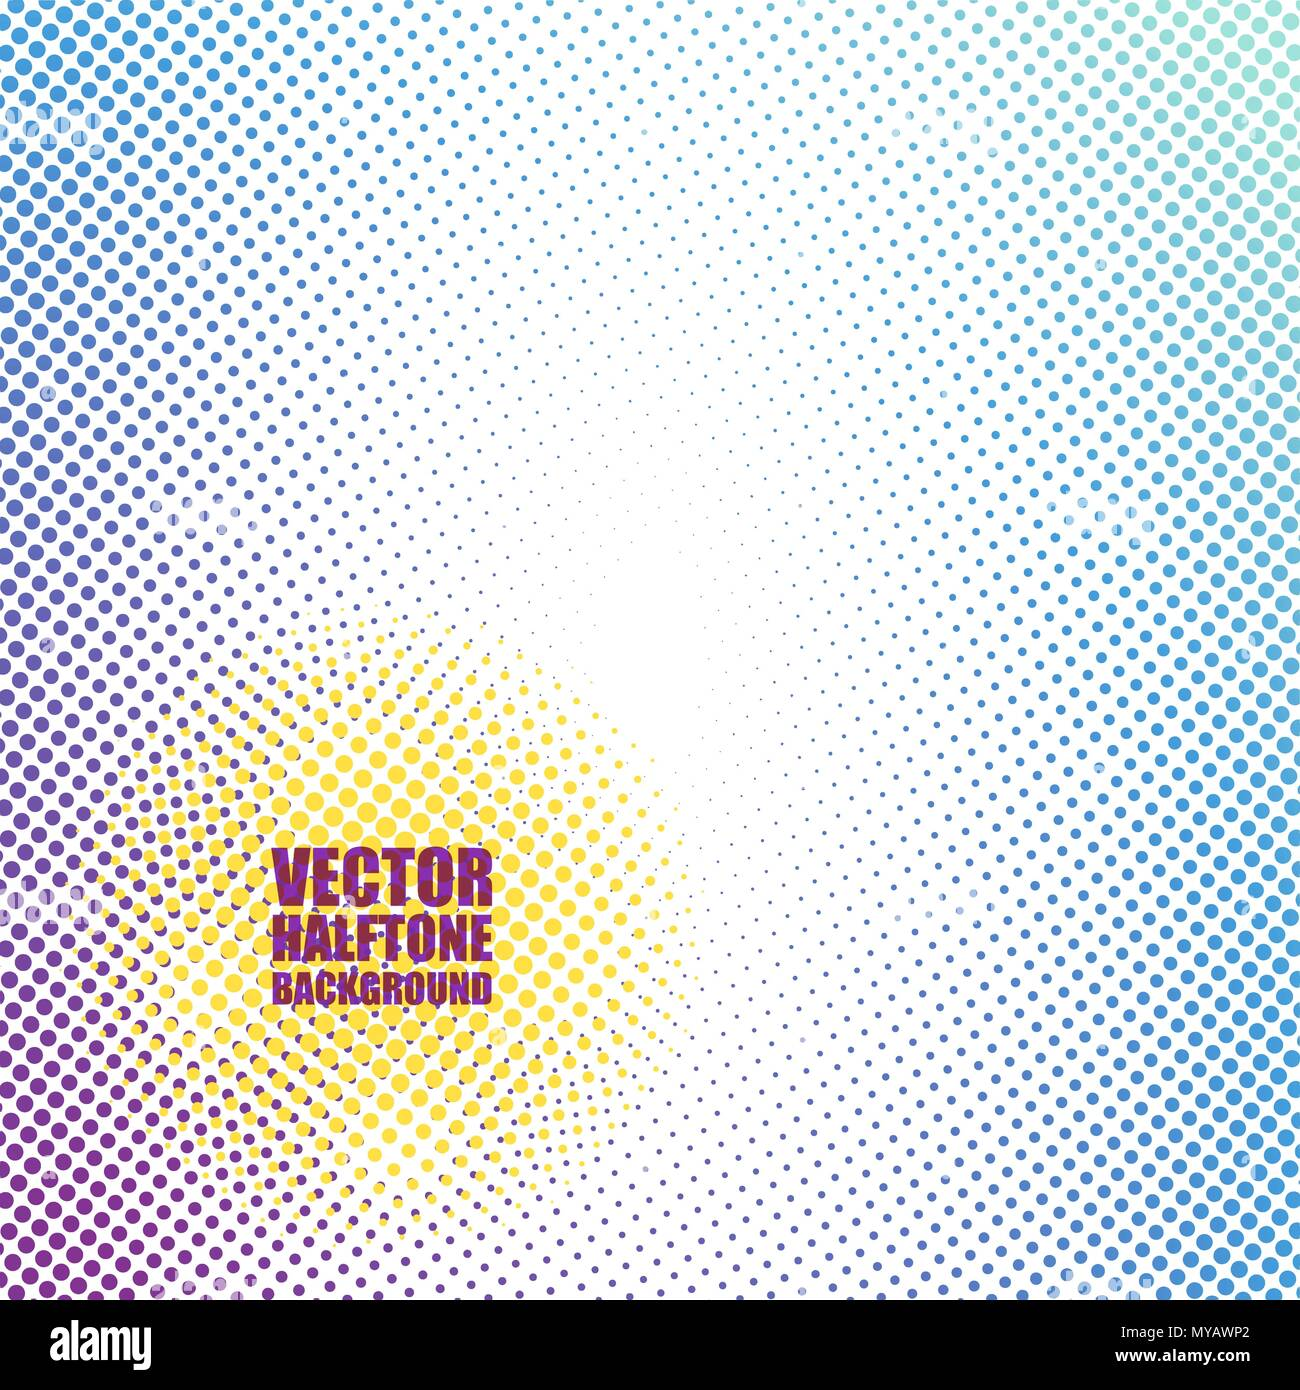 Abstract halftone background - Stock Image